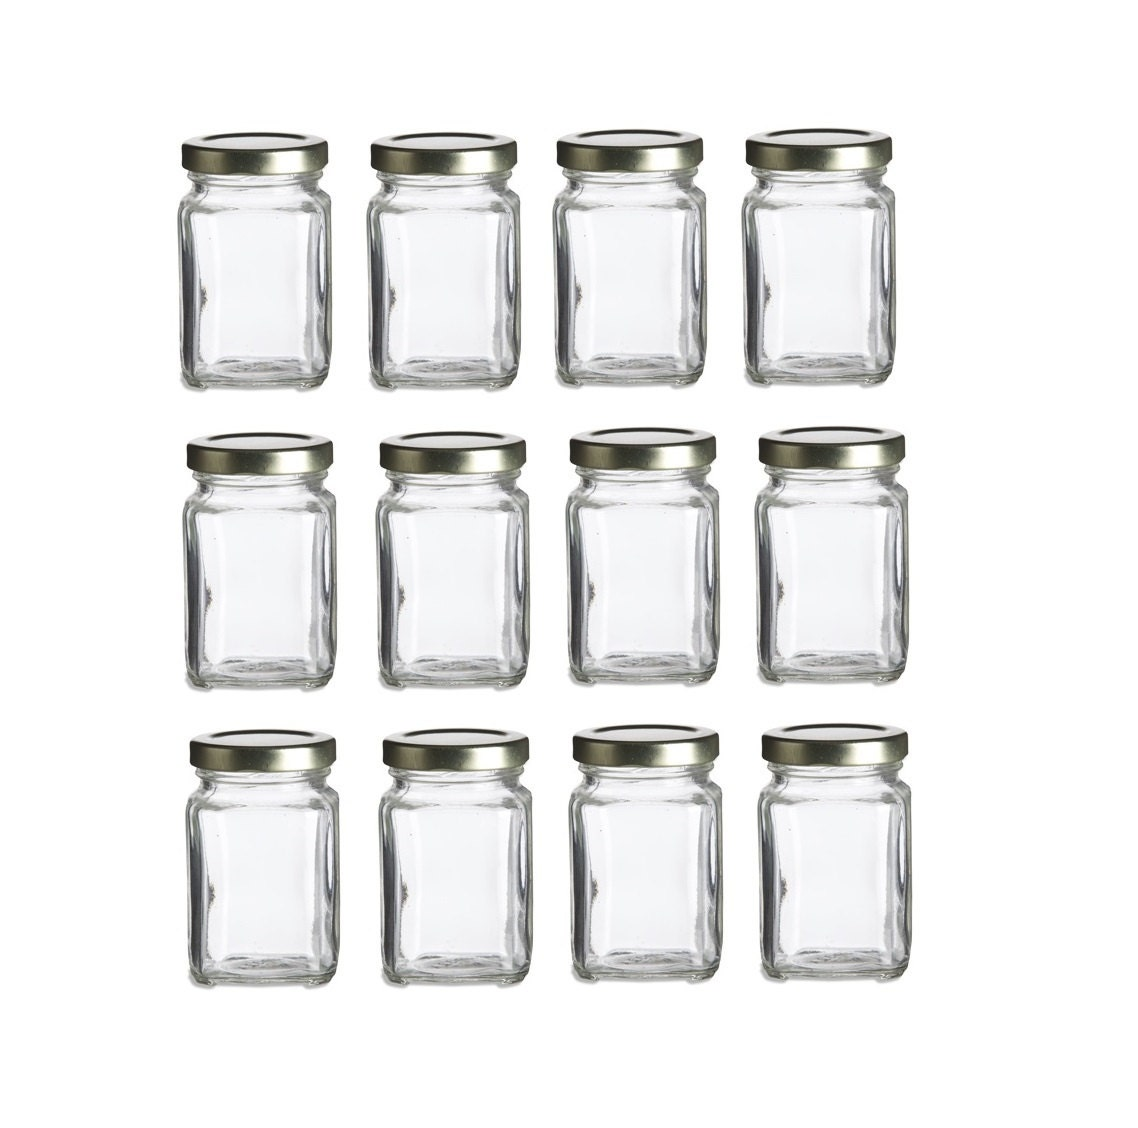 12 Pcs 375 Oz Glass Favor Jars For Wedding Favors Baby Etsy